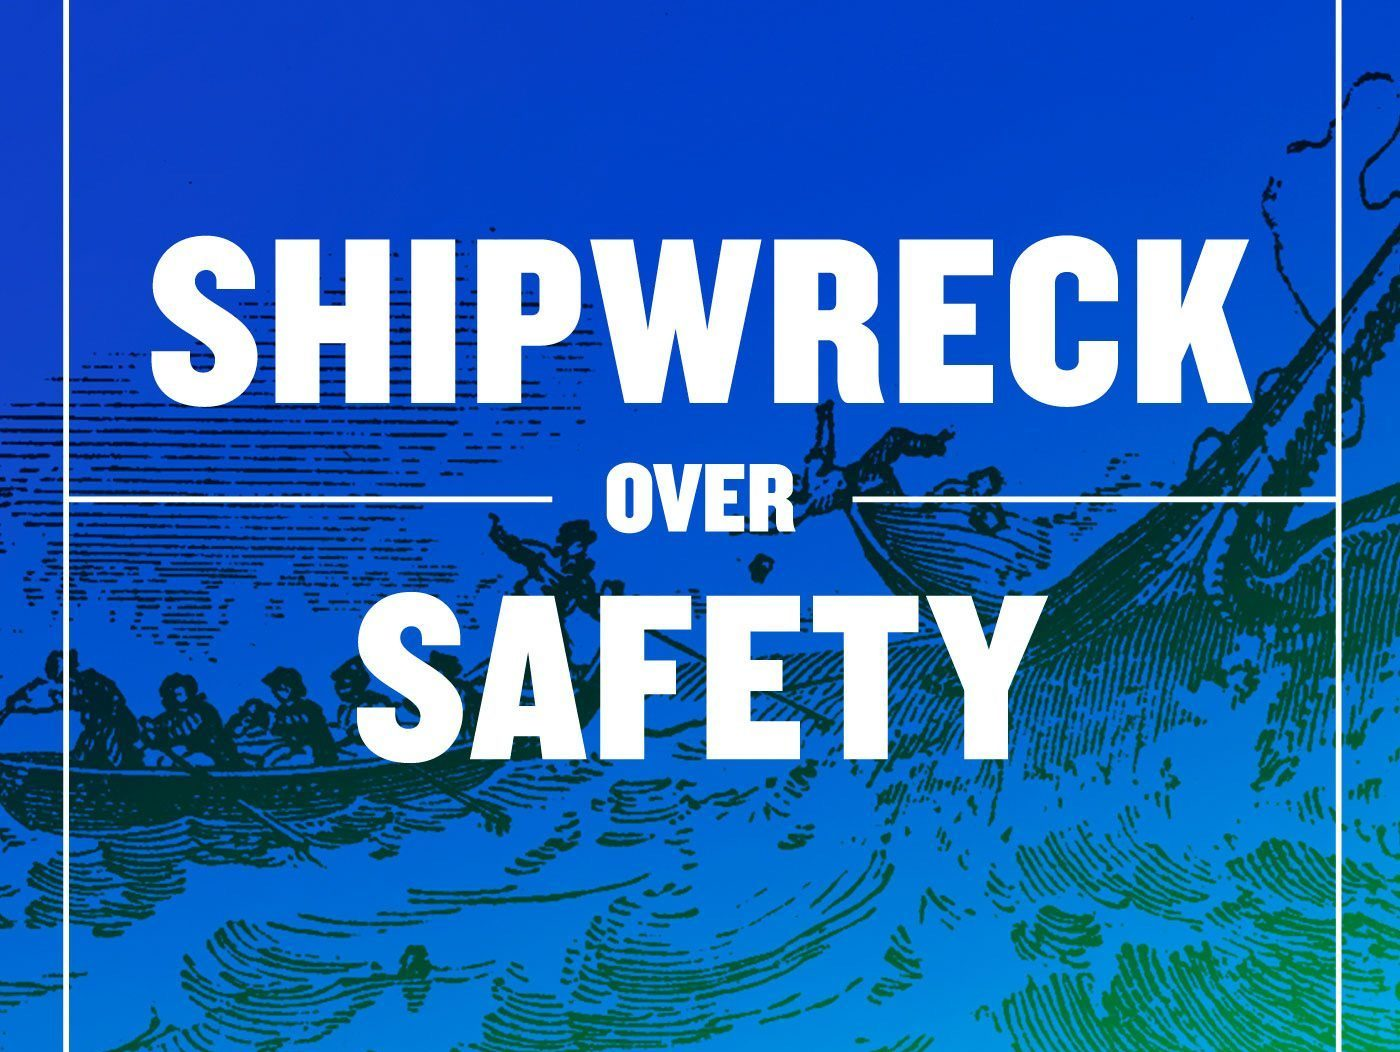 Shipwreck Over Safety